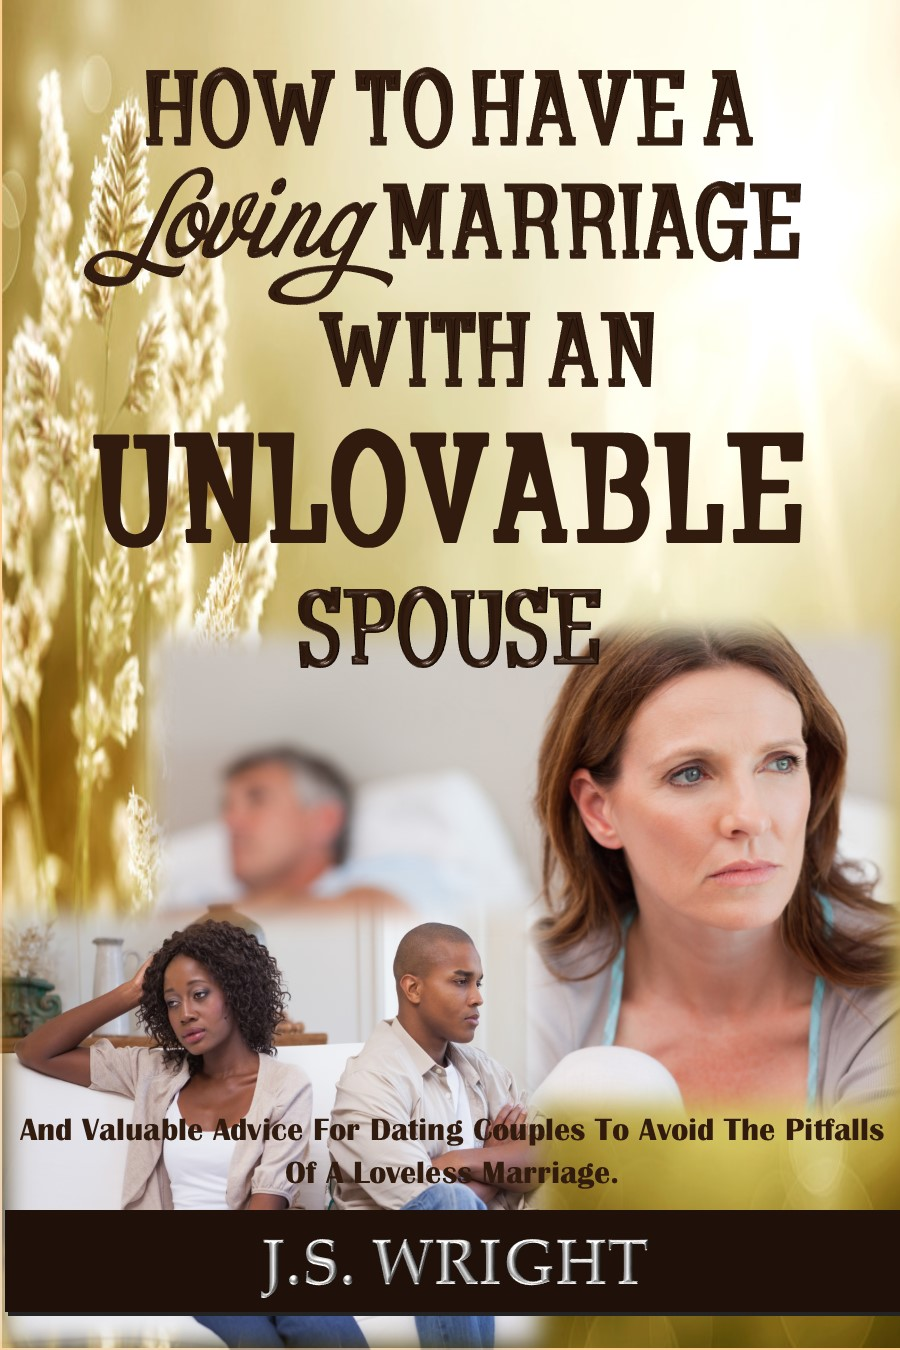 How To Have A Loving Marriage With An Unlovable Spouse. COVER